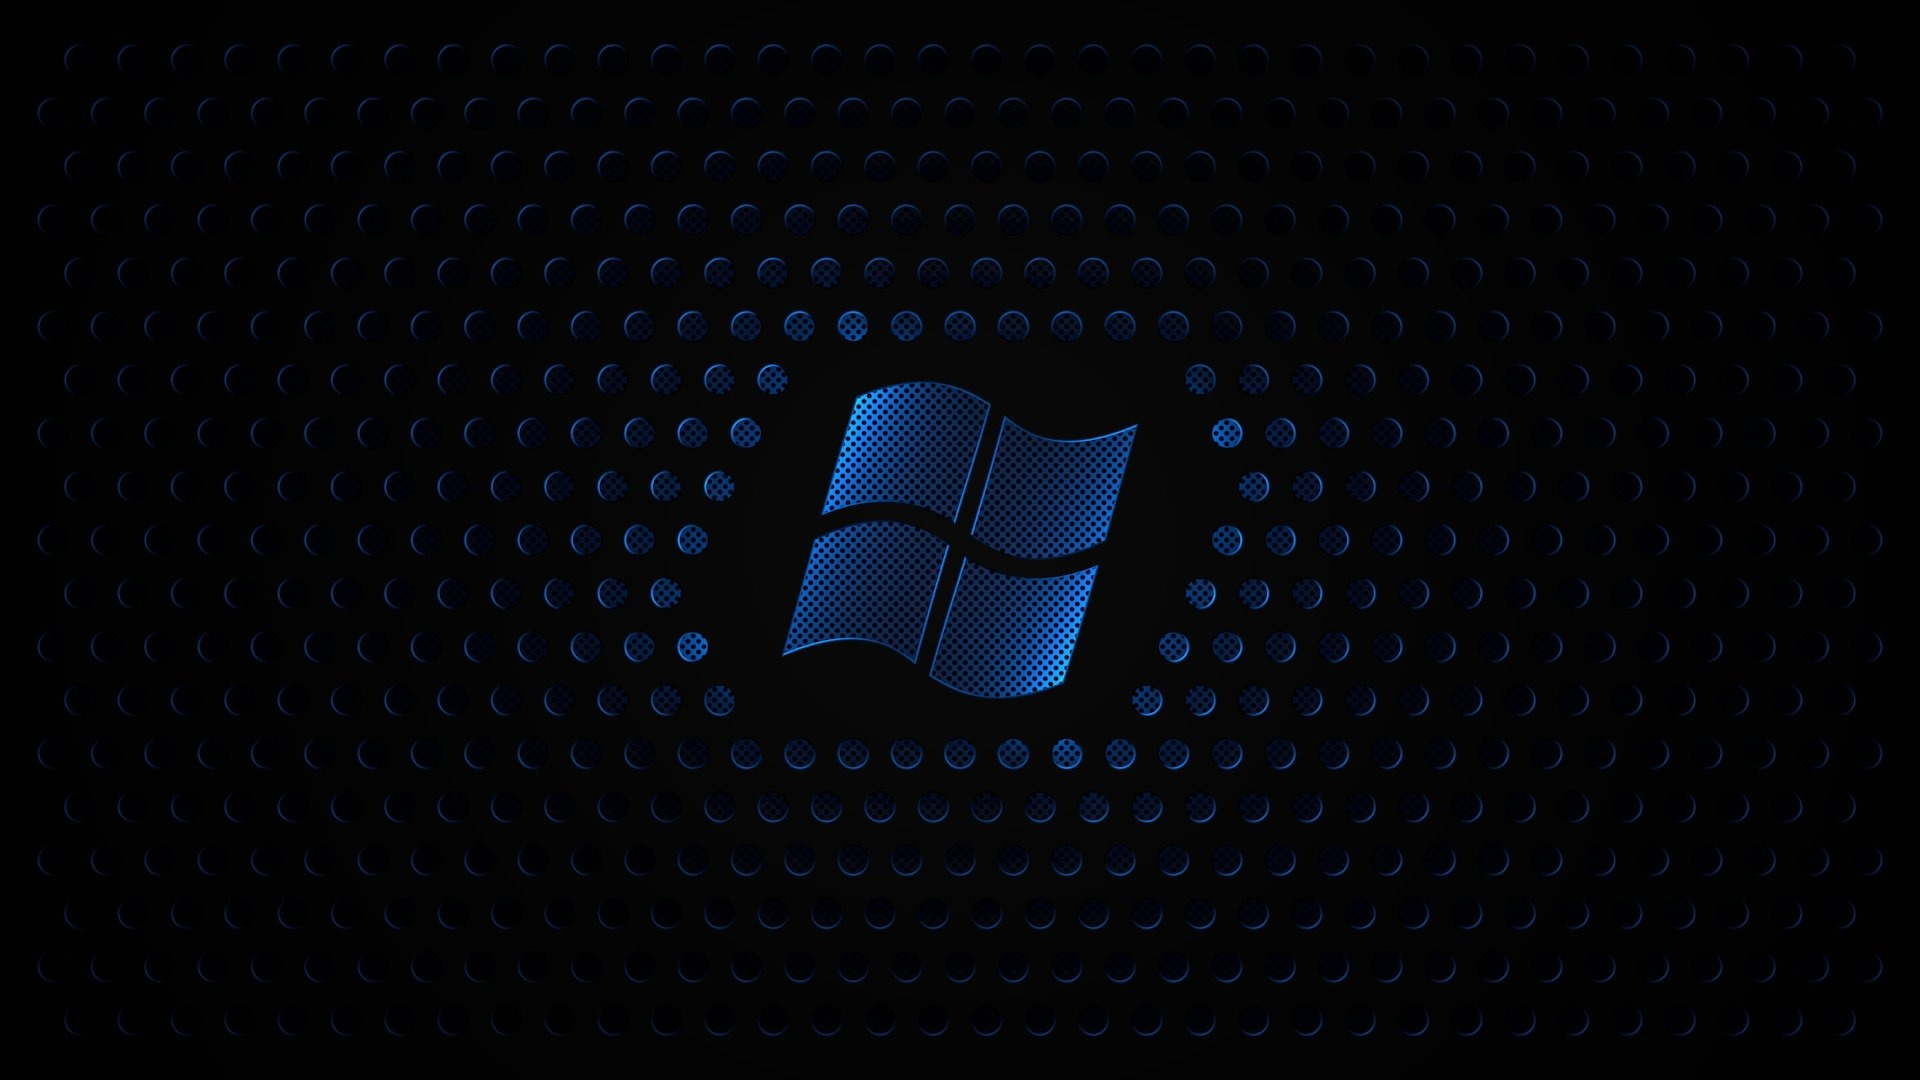 Blue Windows Sign With Black Background Hd S Hd Wallpaper